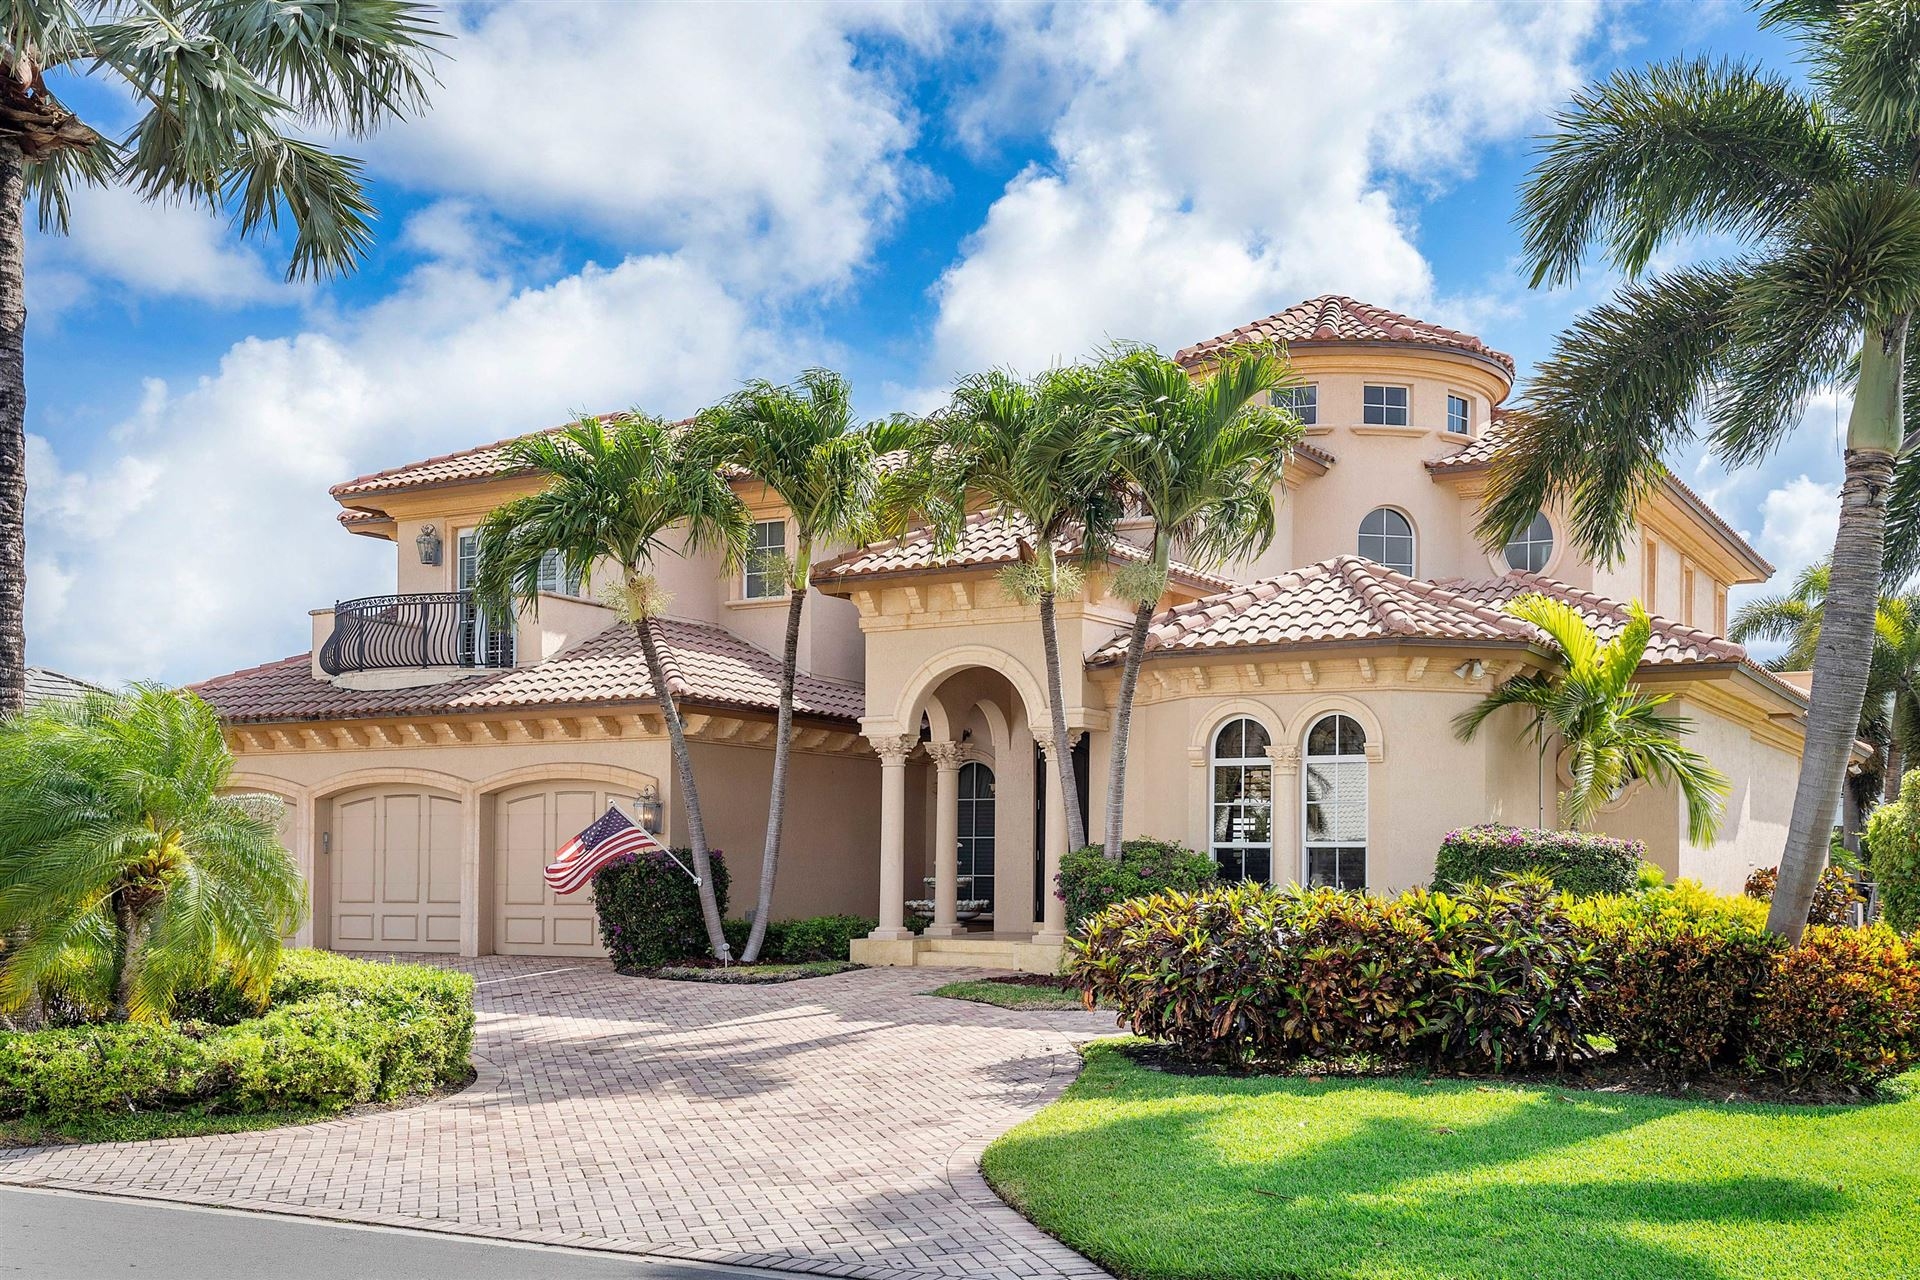 2404 Date Palm Road, Boca Raton, FL 33432 - MLS#: RX-10713937